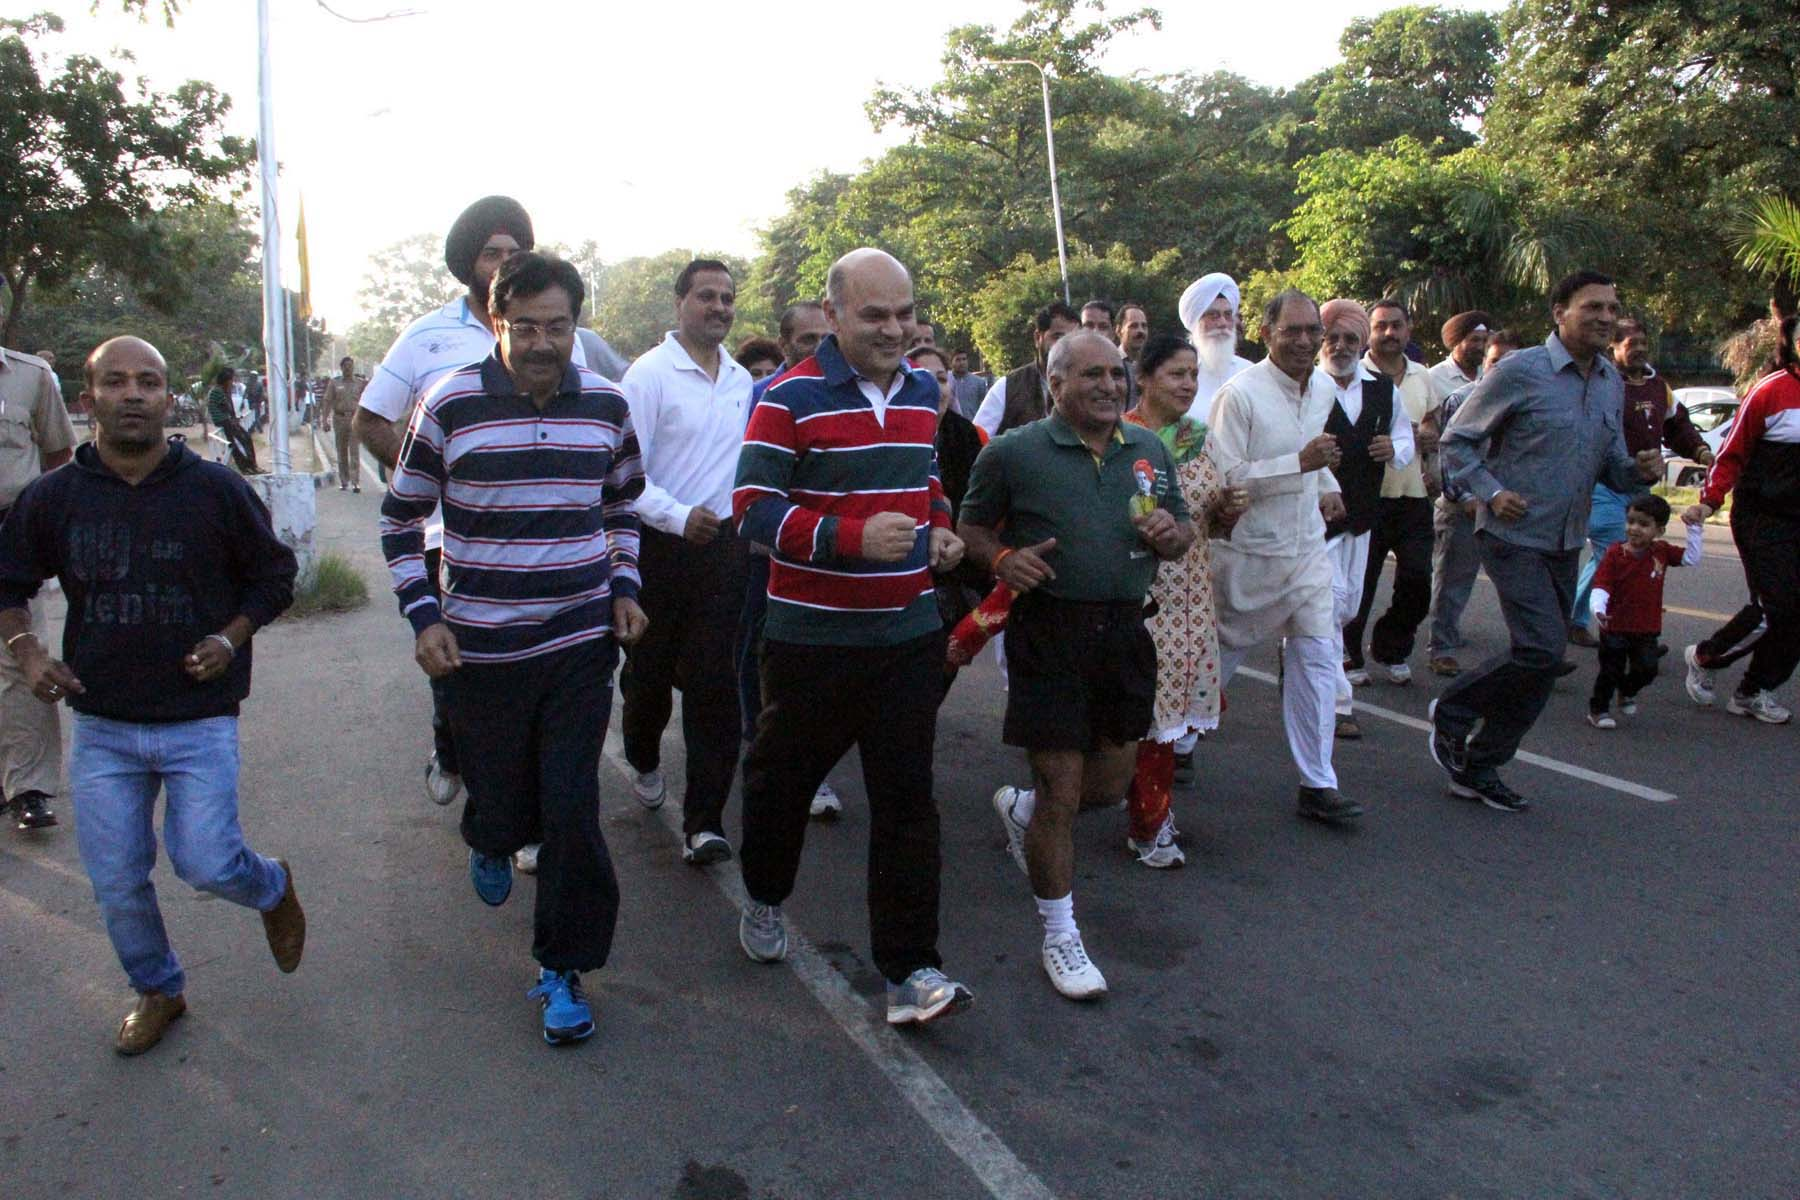 The Adviser to the Administrator, UT, Chandigarh, Mr. K.K. Sharma, UT Home Secretary, Mr. Anil Kumar and others participating in the �RUN FOR UNITY� on the occasion of Rashtriya Ekta Diwas at Sukhan Lake, Chandigarh on Friday, October 31, 2014.